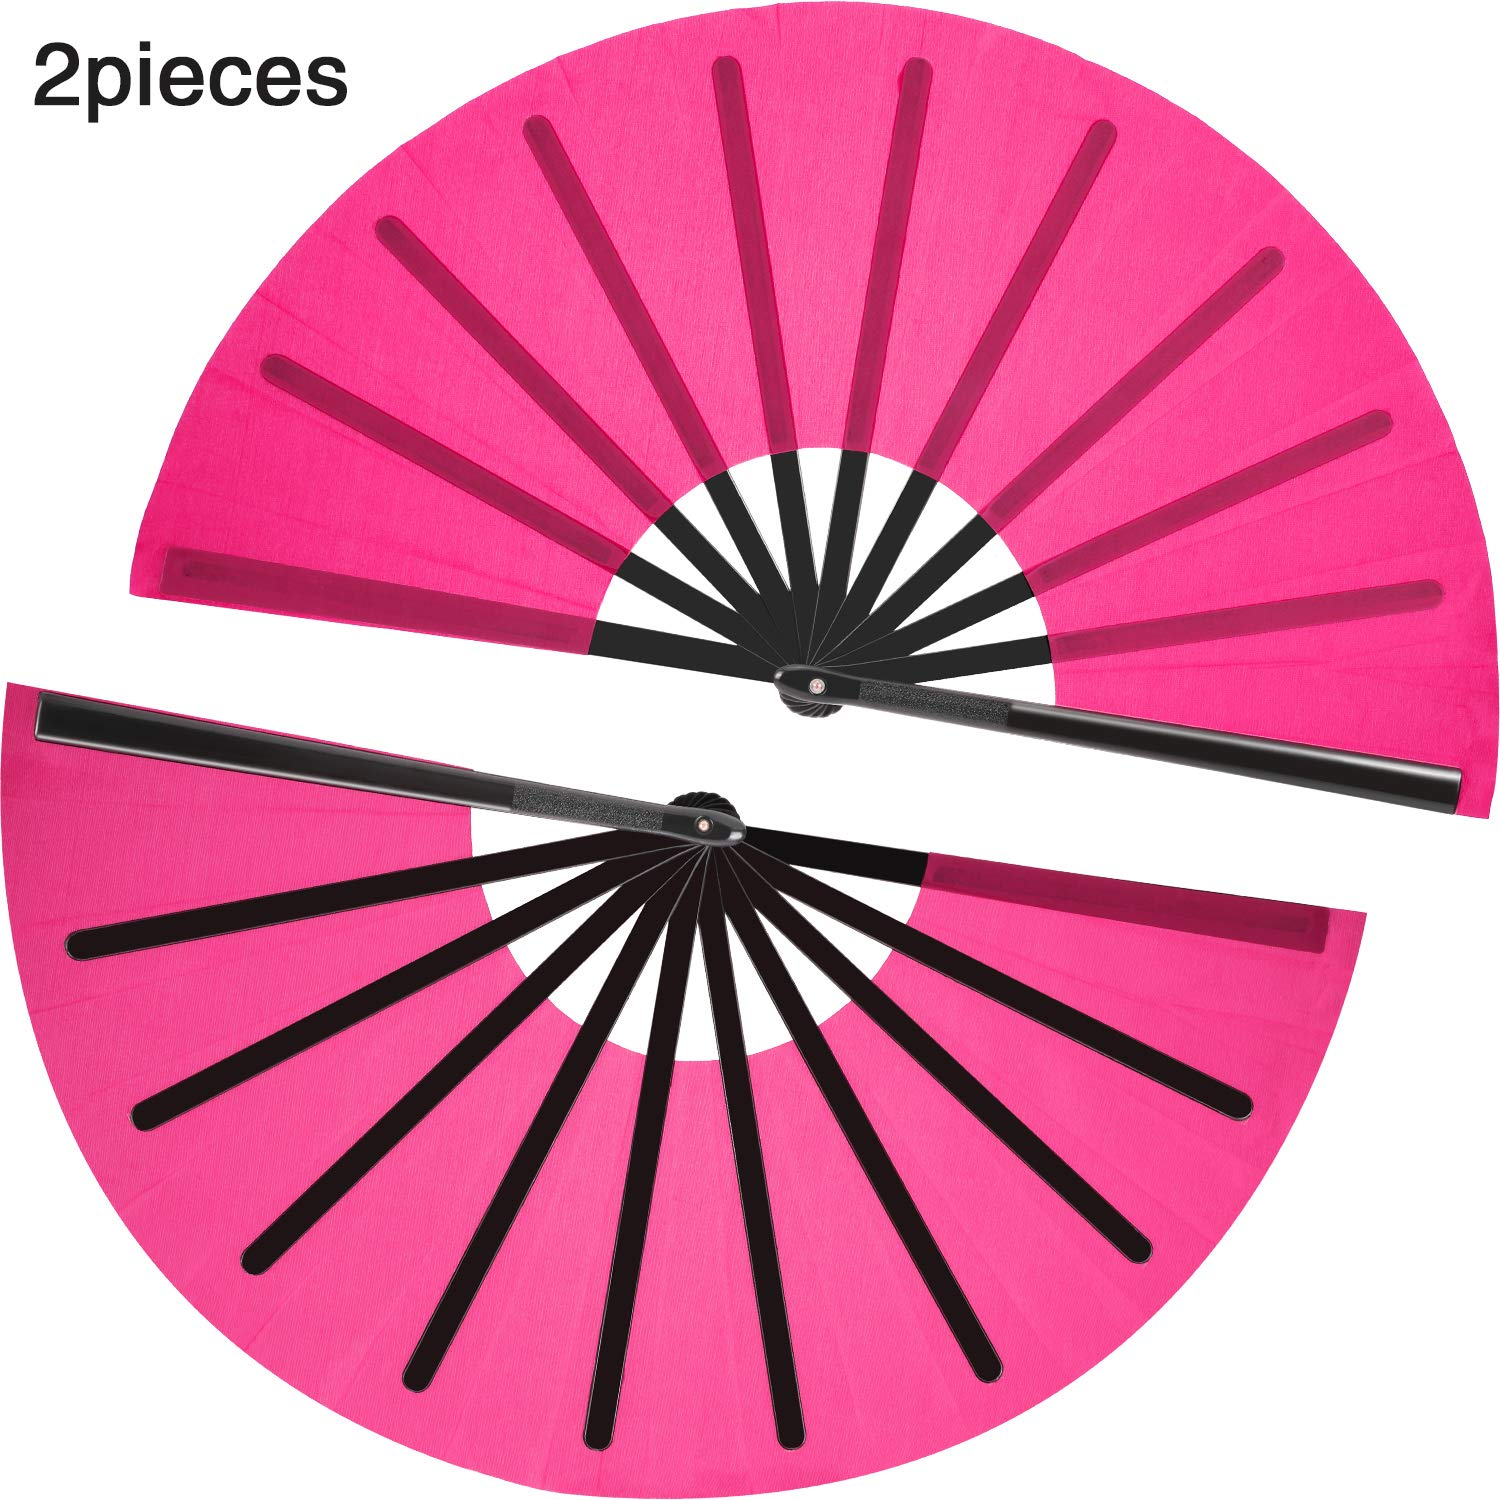 Details about 2 Pieces Large Folding Fan Nylon Cloth Handheld Chinese Kung  Fu Tai Party Pink